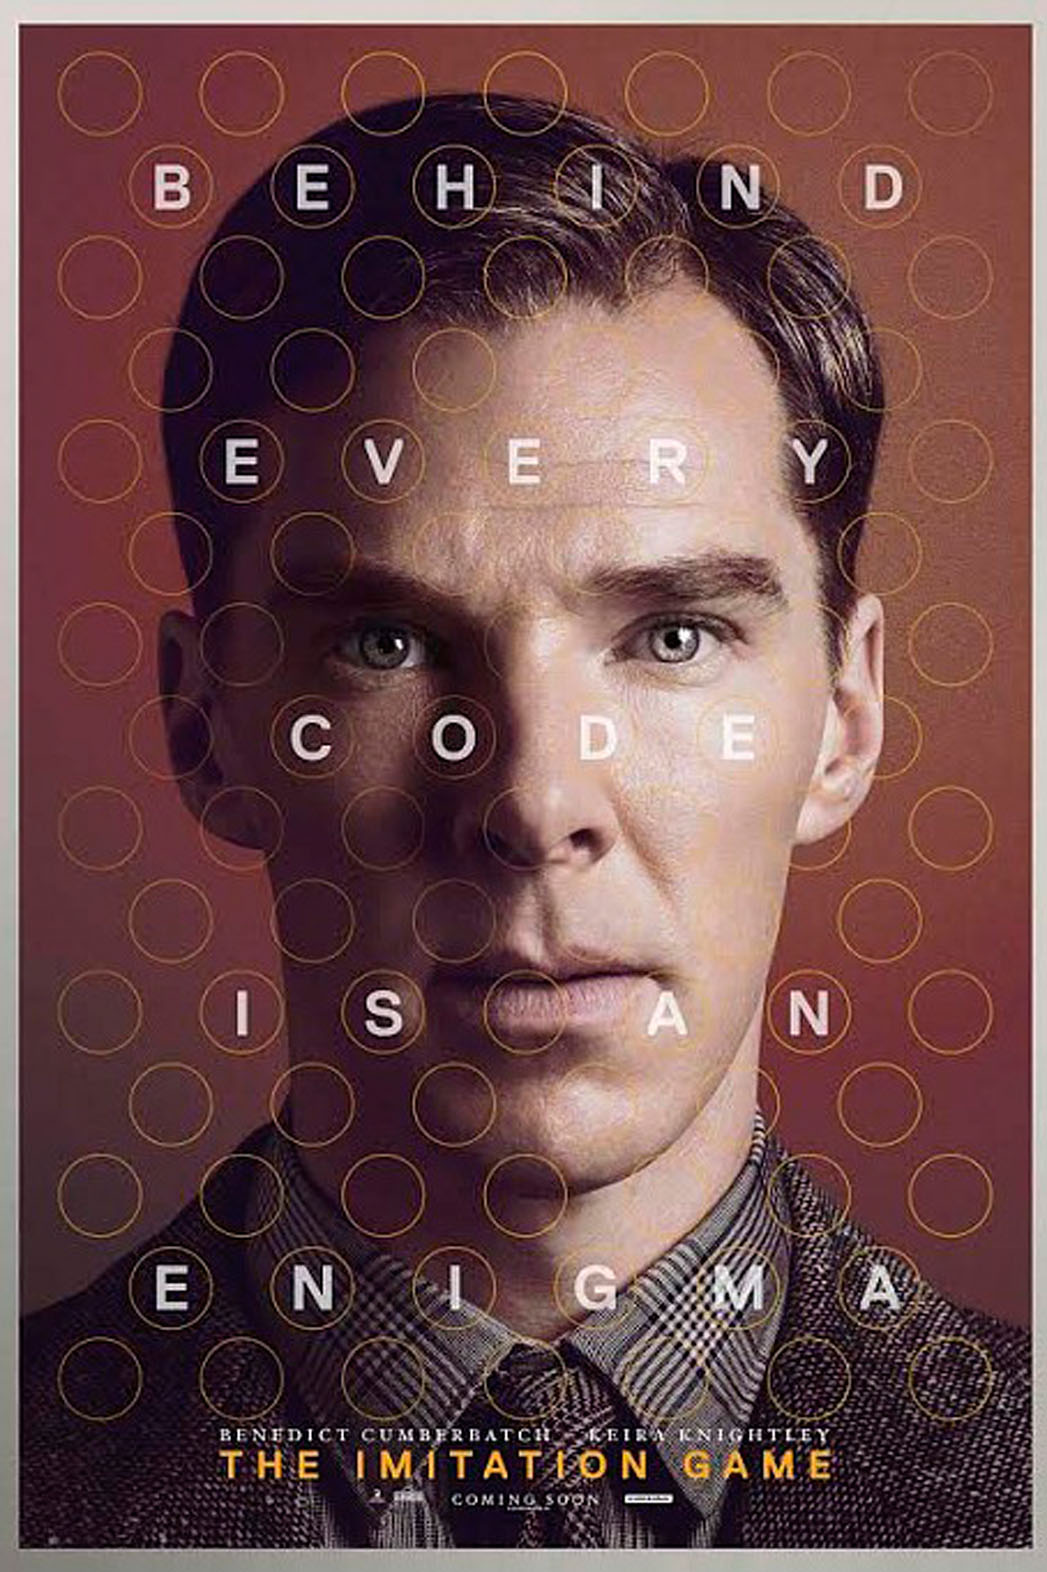 The Imitation Game, 2014